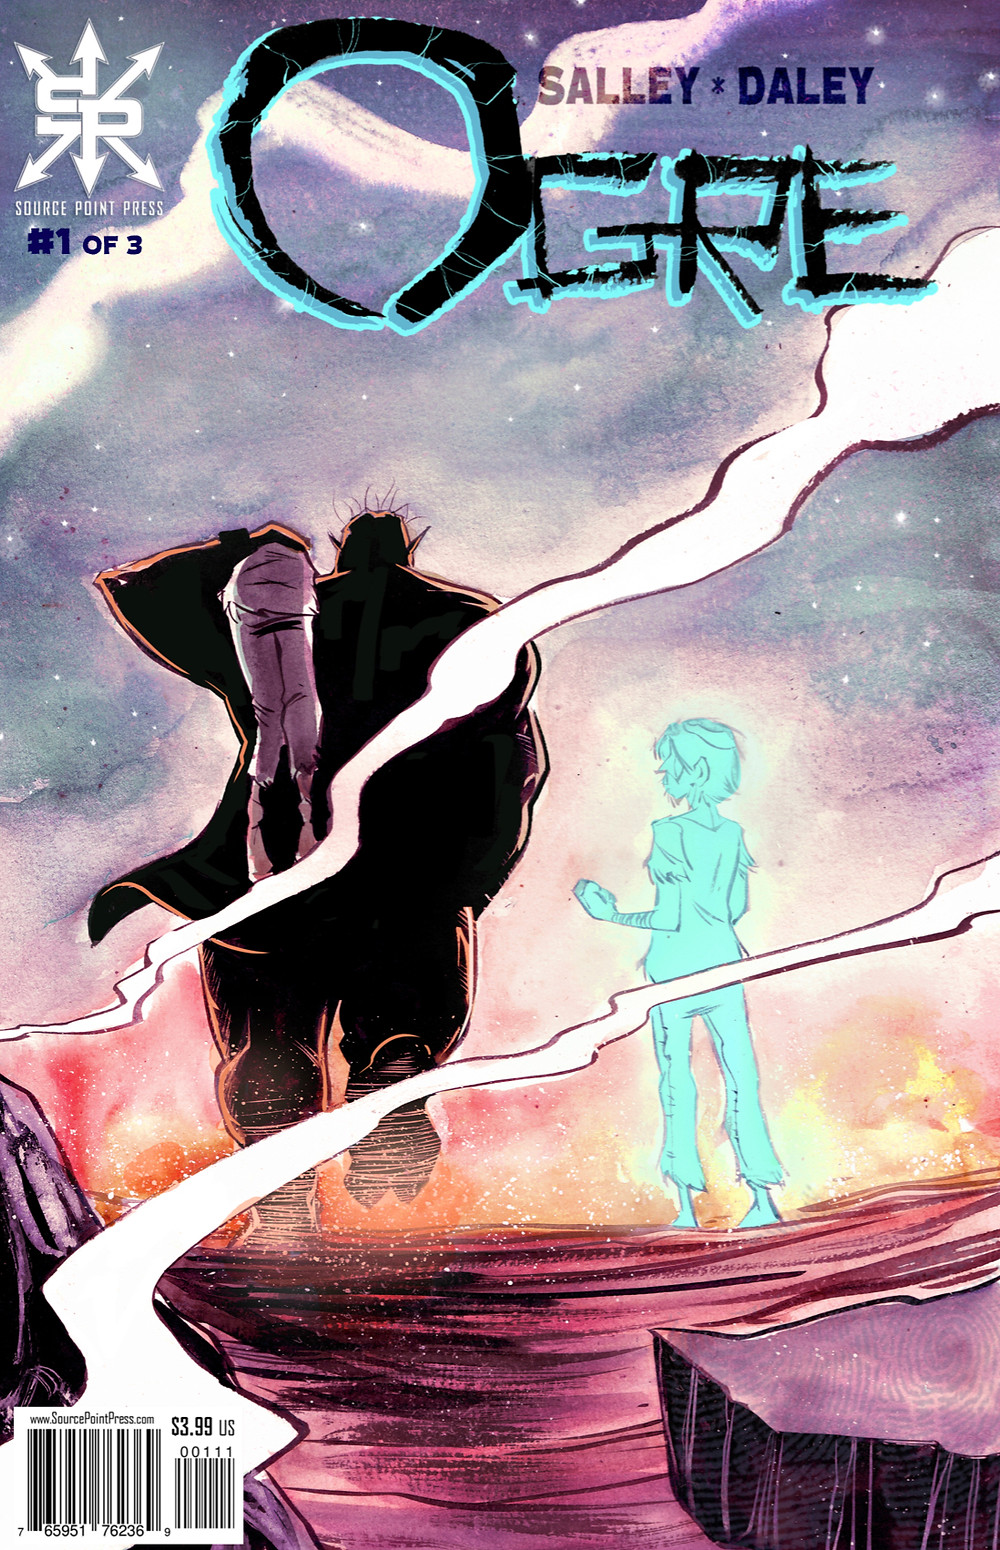 Ogre, issue #1, cover, self-published, Salley/Daley